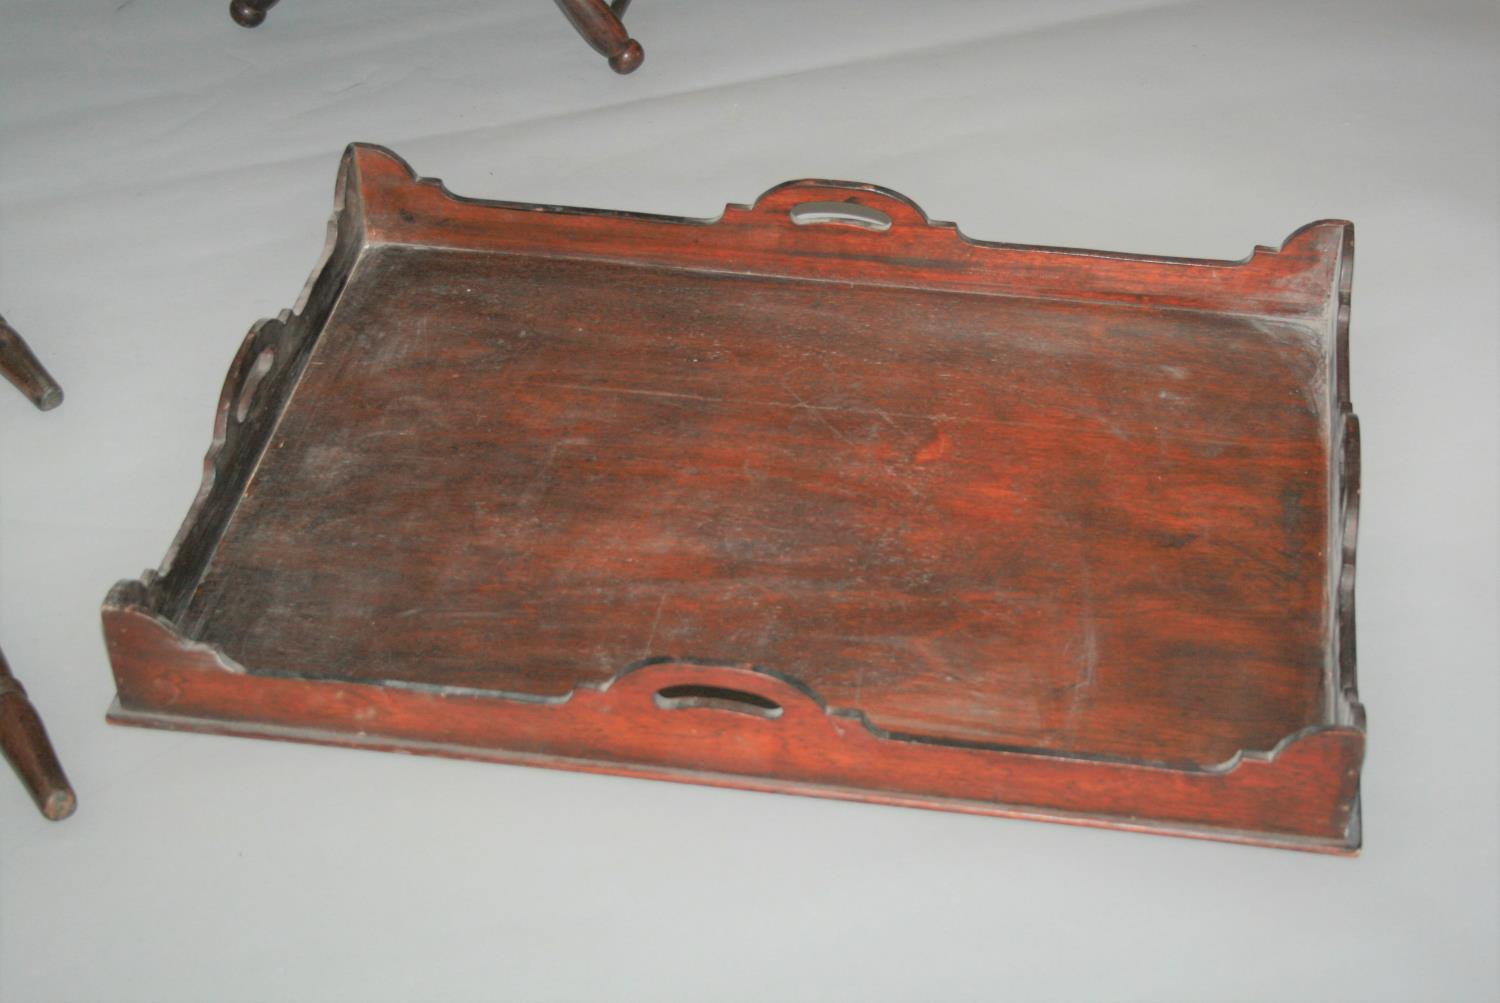 Large collection of 19th Century butler trays and stands. (as seen) - Image 4 of 4